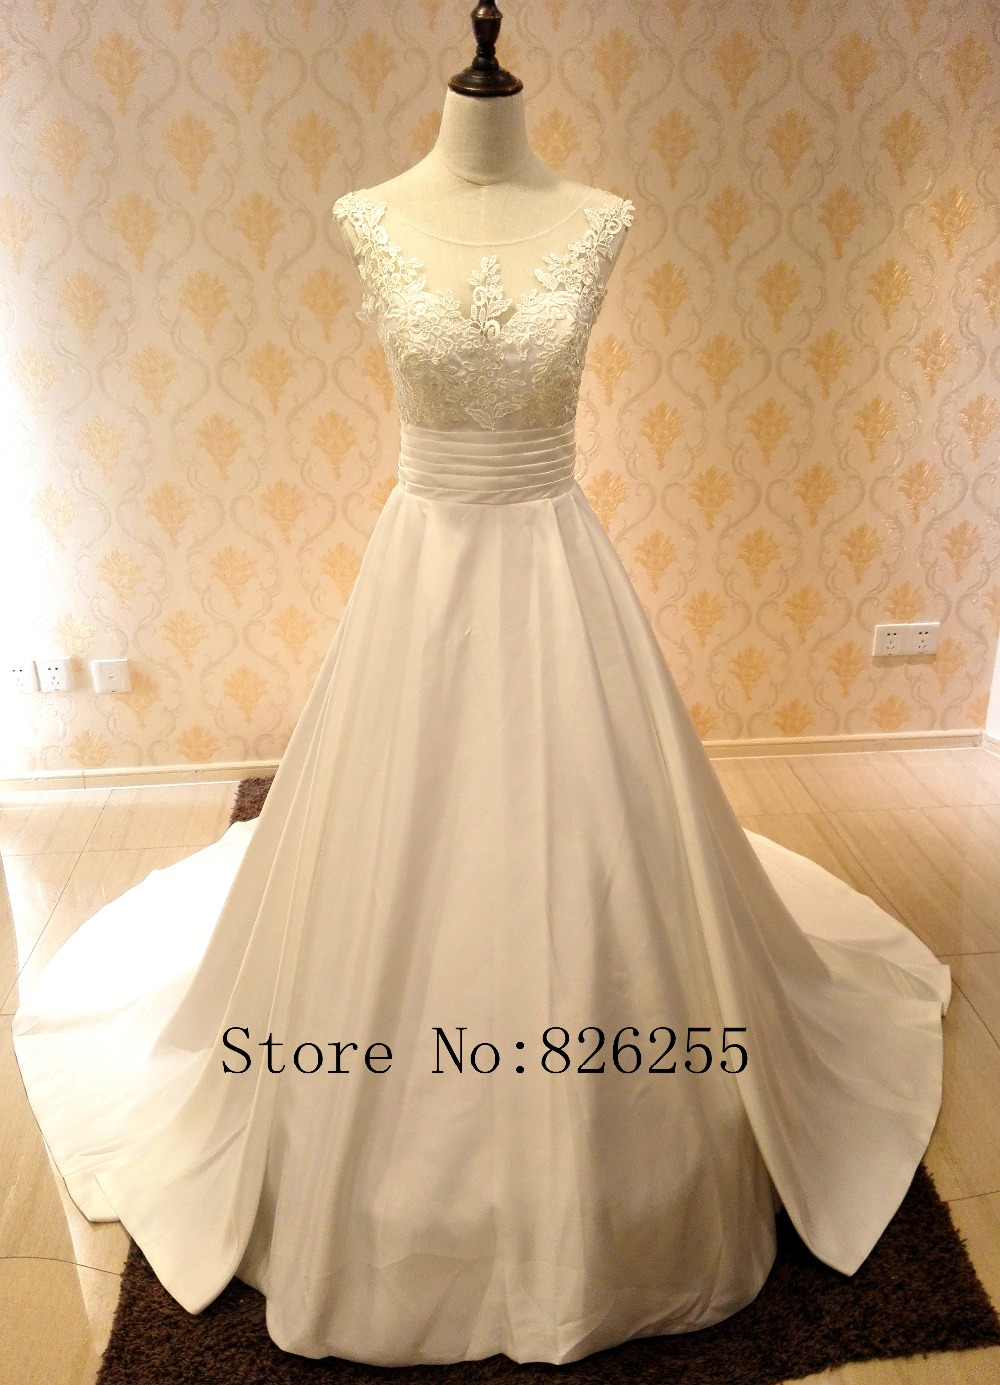 Compare Prices On Elegant Wedding Dress Online Shopping Buy Low